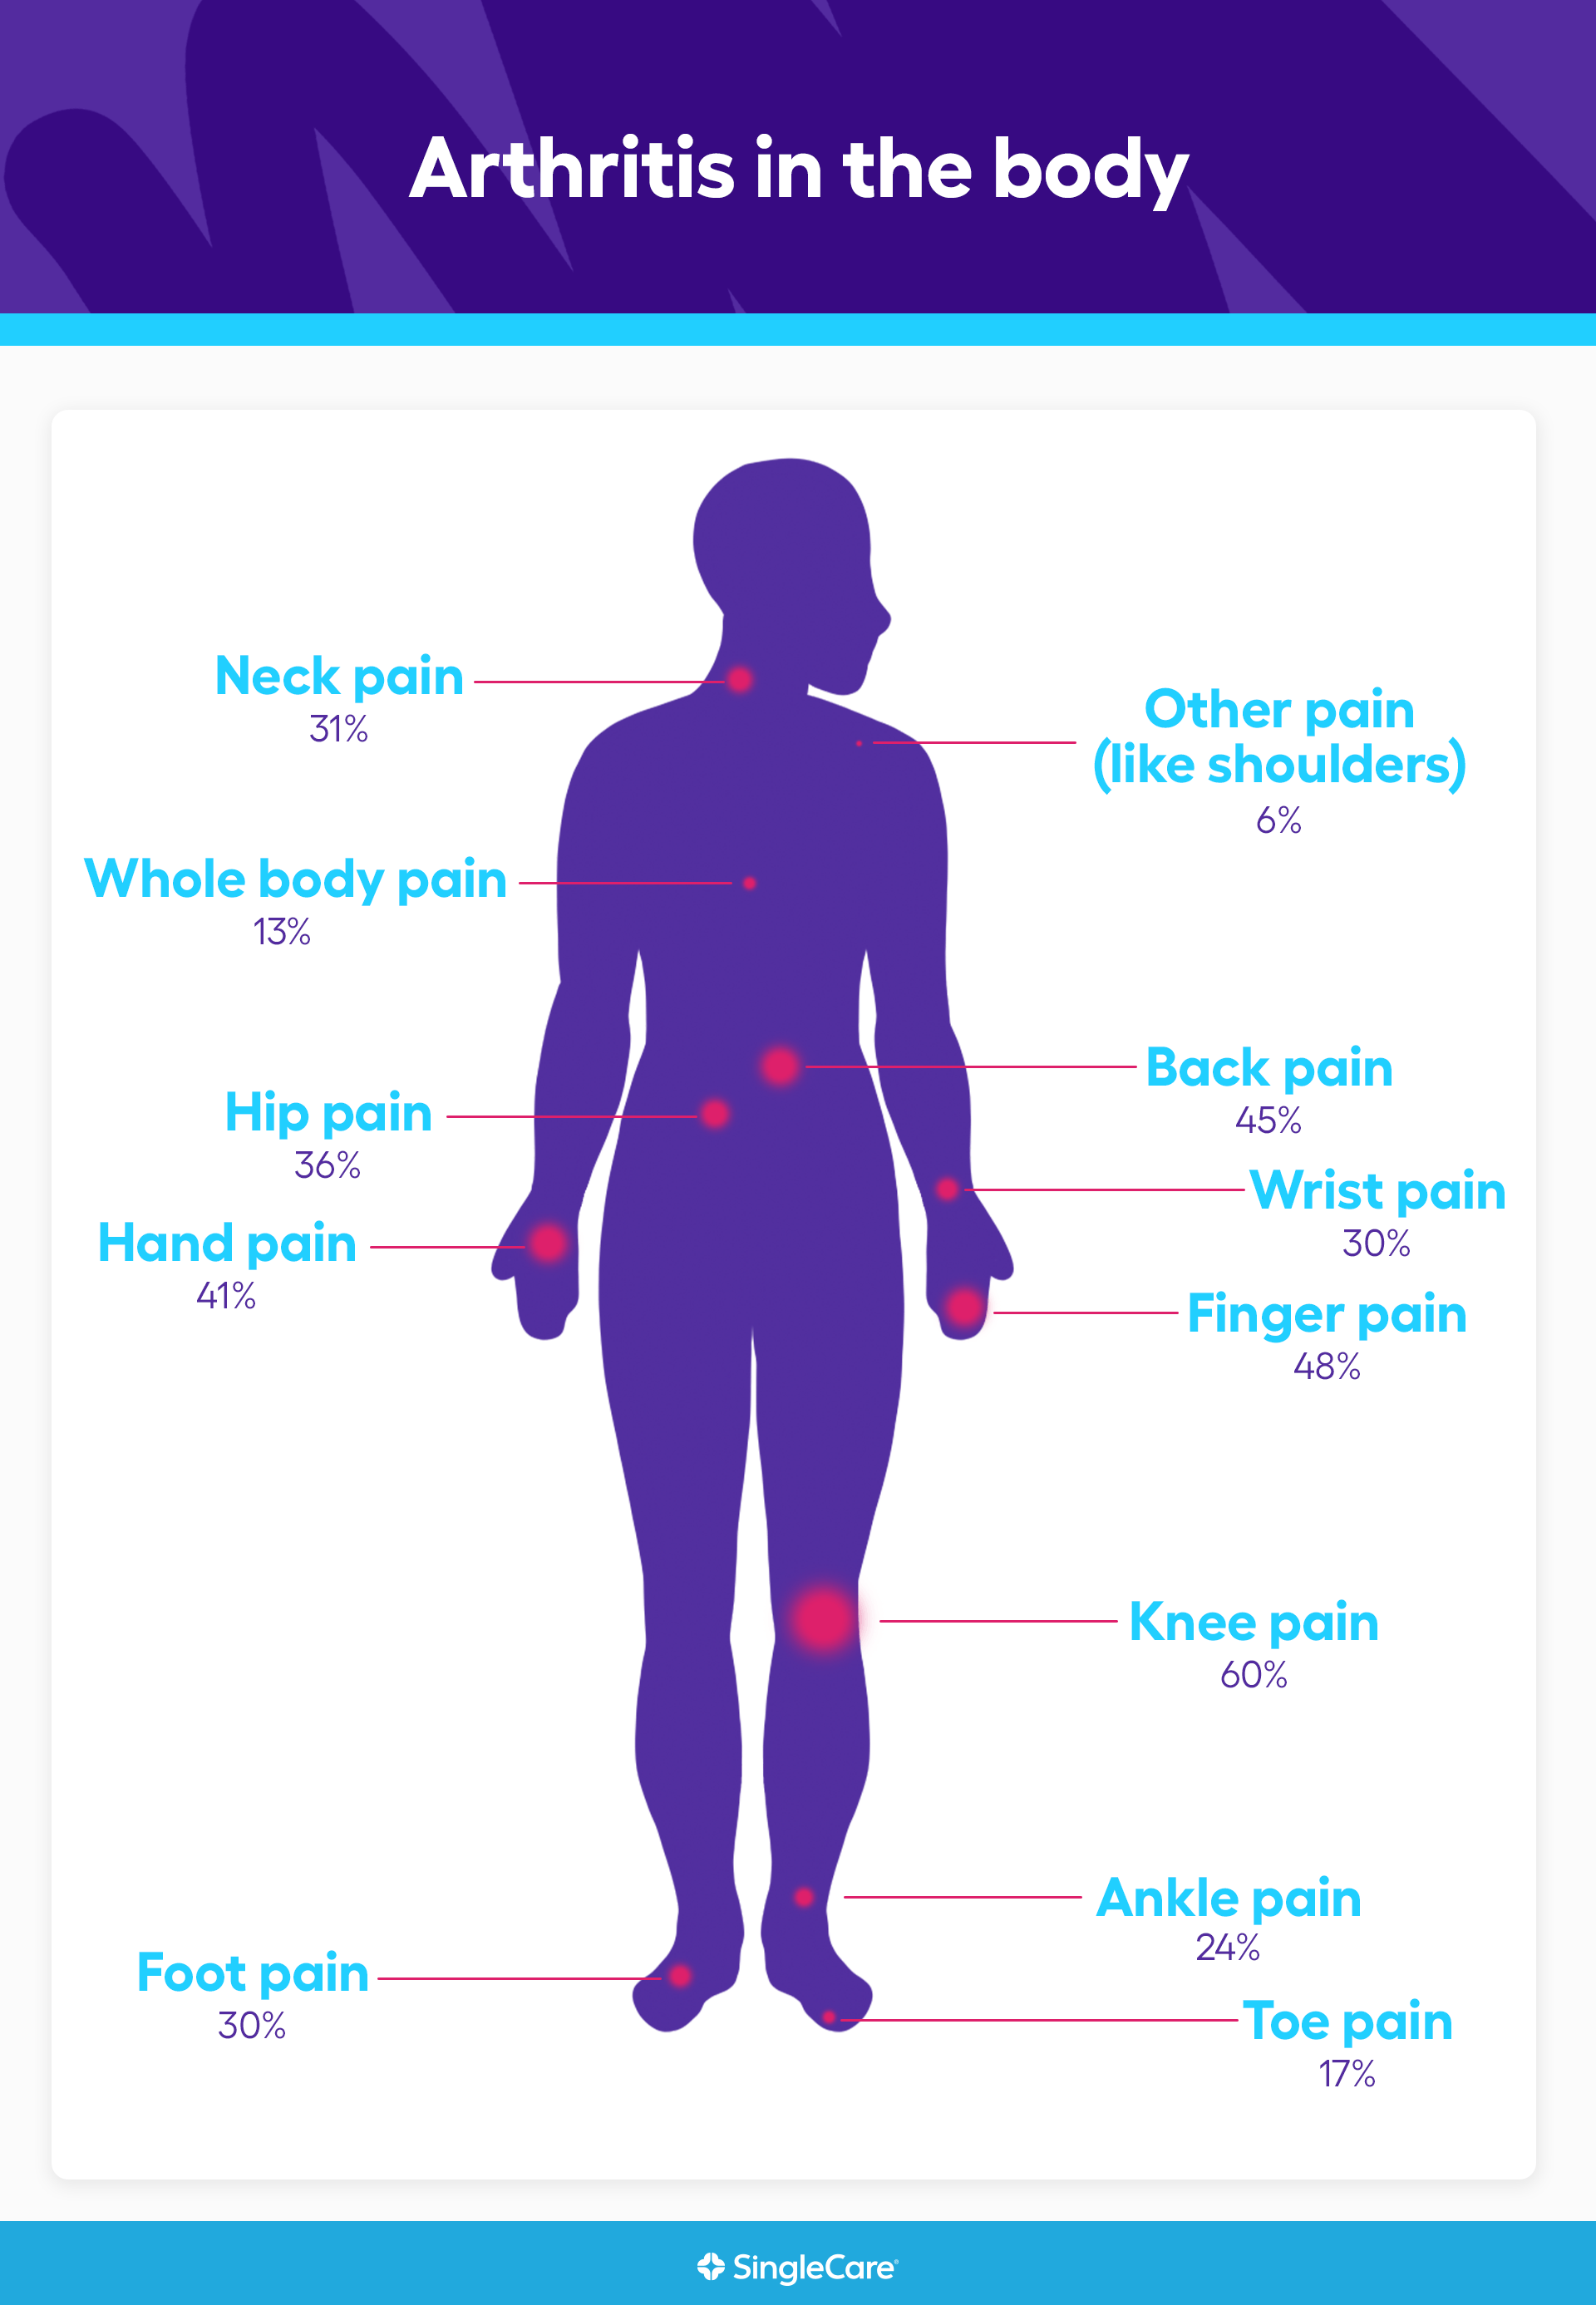 Human body heat map showing which body parts are most affected by arthritis